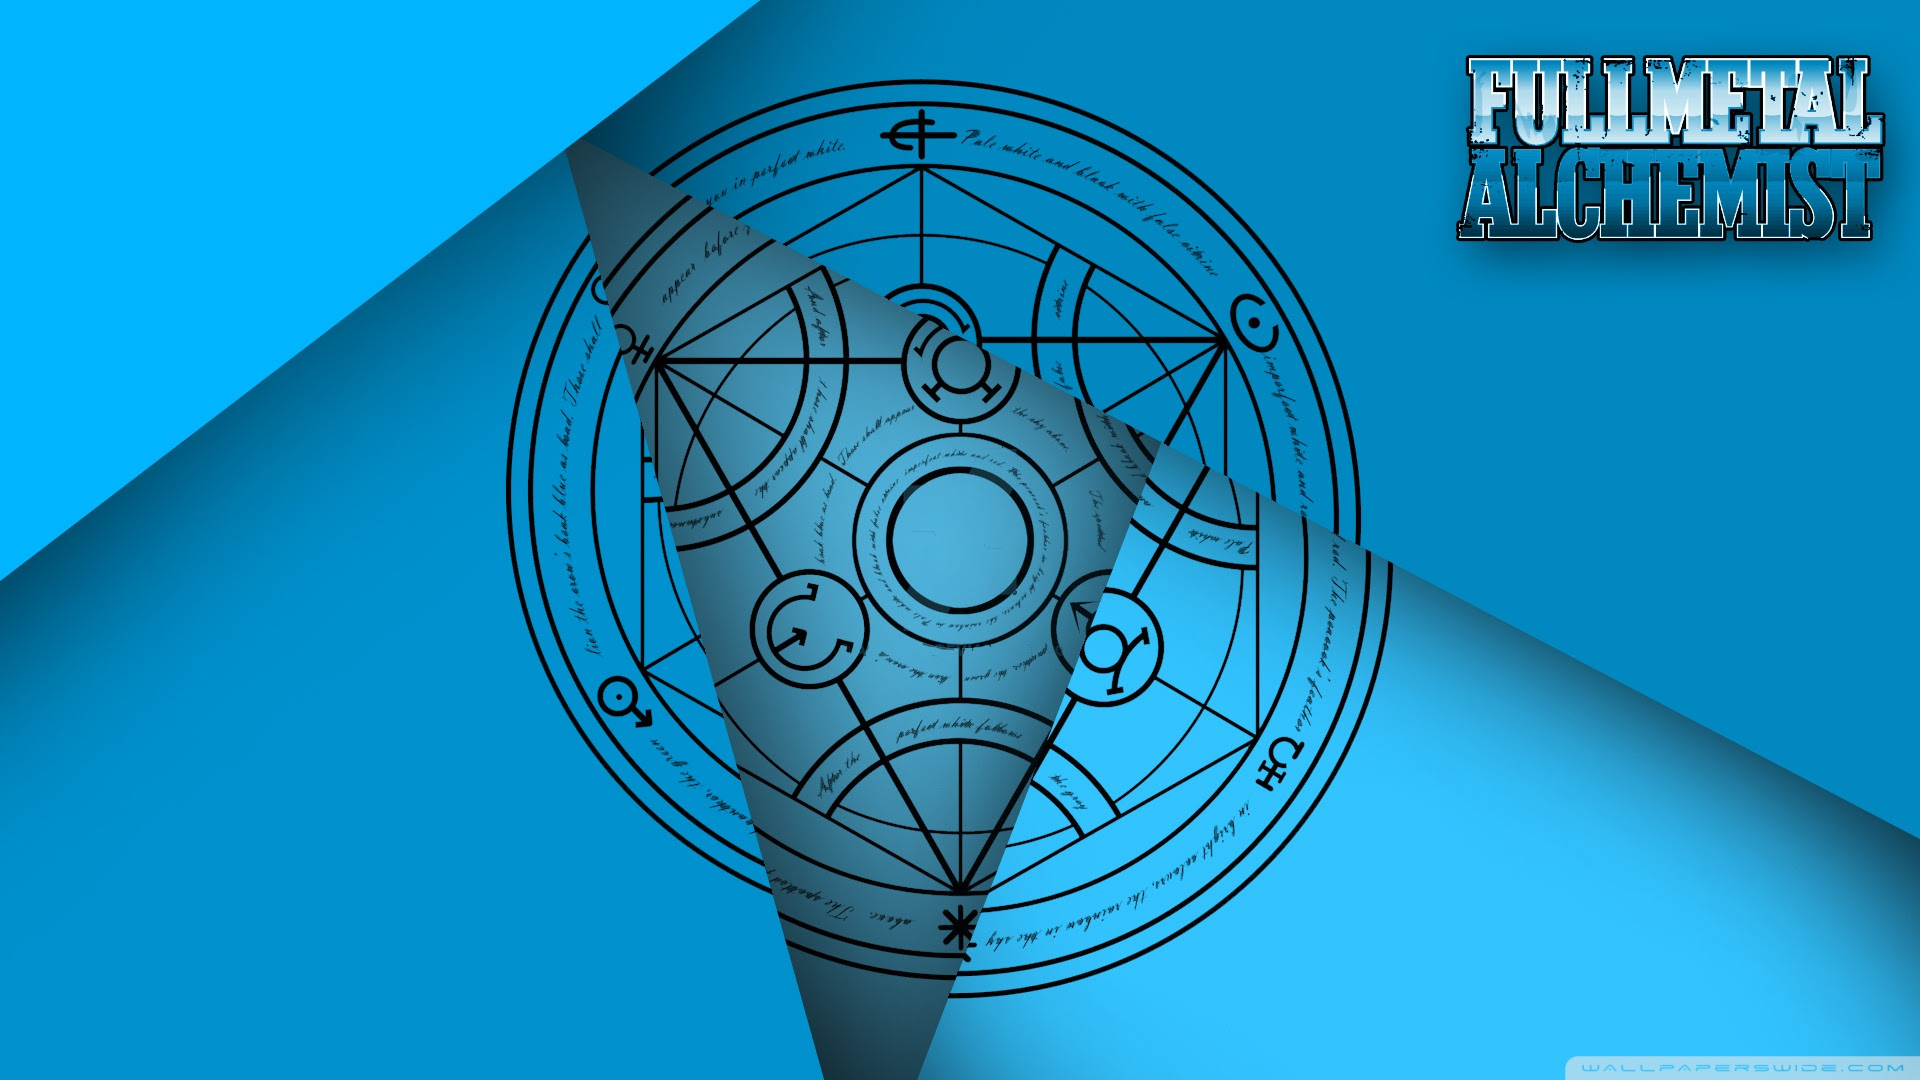 Fullmetal Alchemist Ultra Hd Desktop Background Wallpaper For 4k